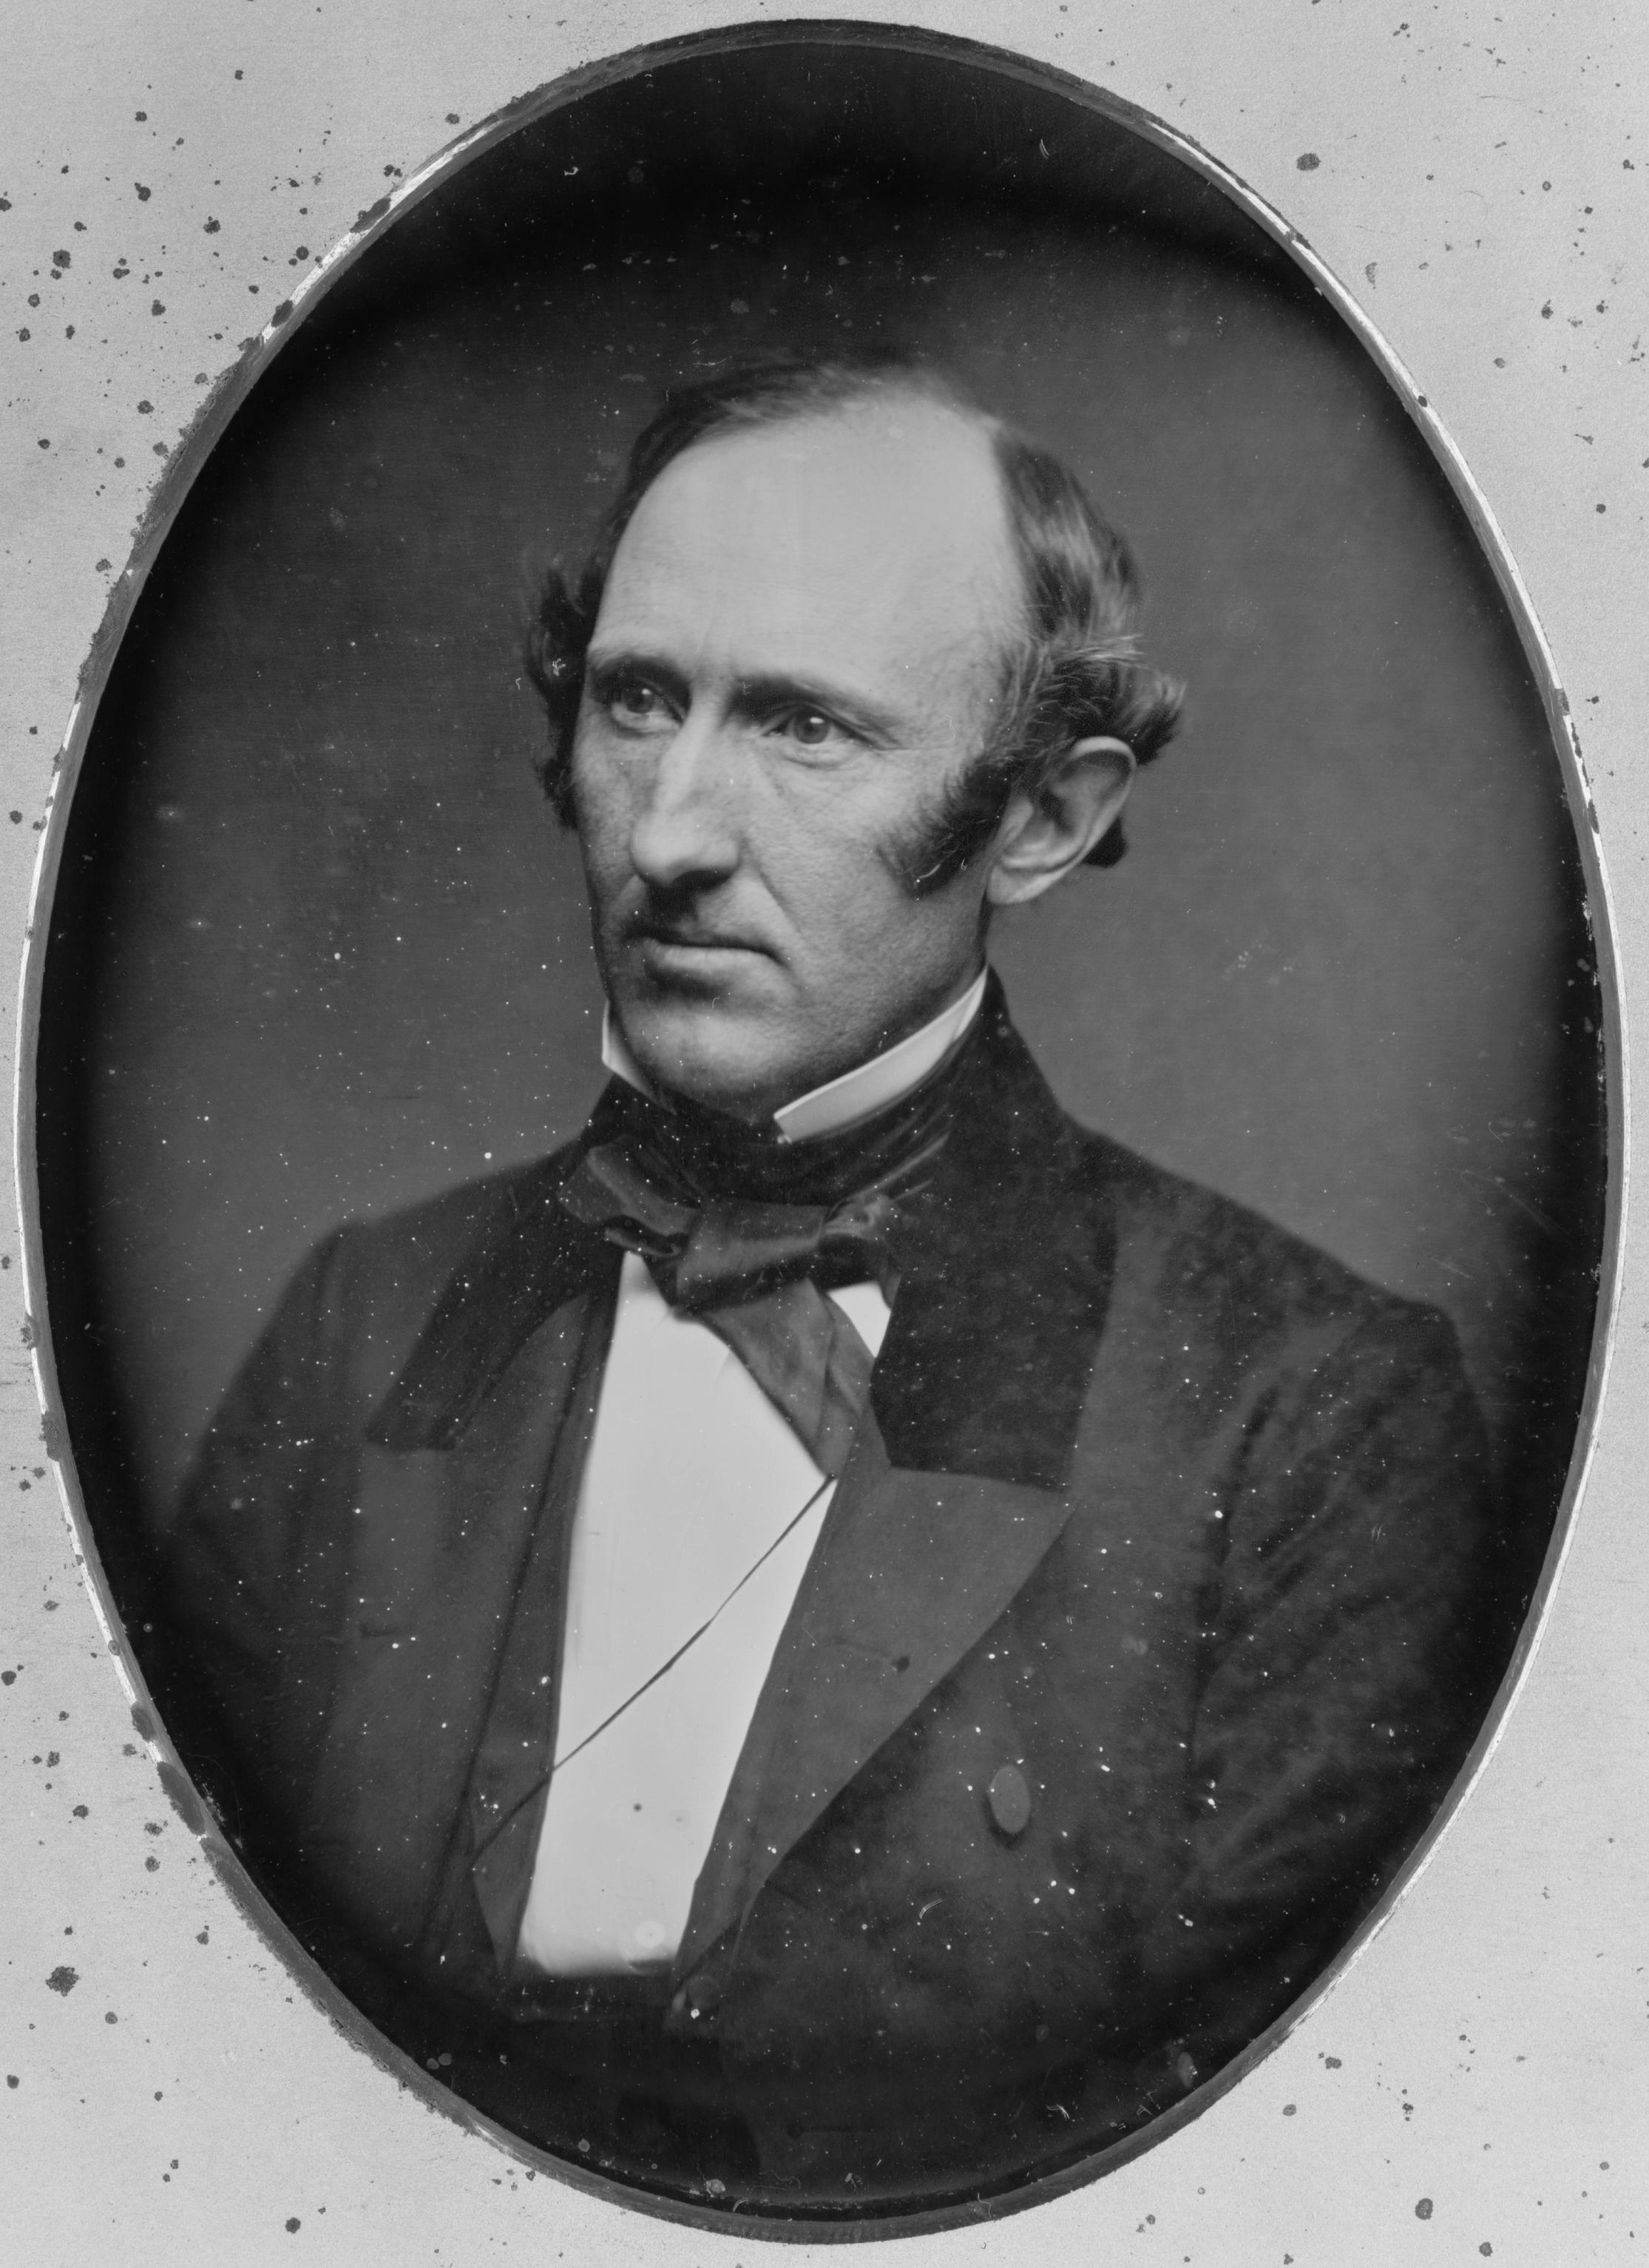 a biography of wendell phillips an american abolitionist leader and political reformer Only one of hofstadter's subjects, the abolitionist wendell phillips, never held public office moreover, by 1948 phillips's reputation was pretty much in tatters, his rhetoric and his efforts most often deemed quixotic and ineffective.